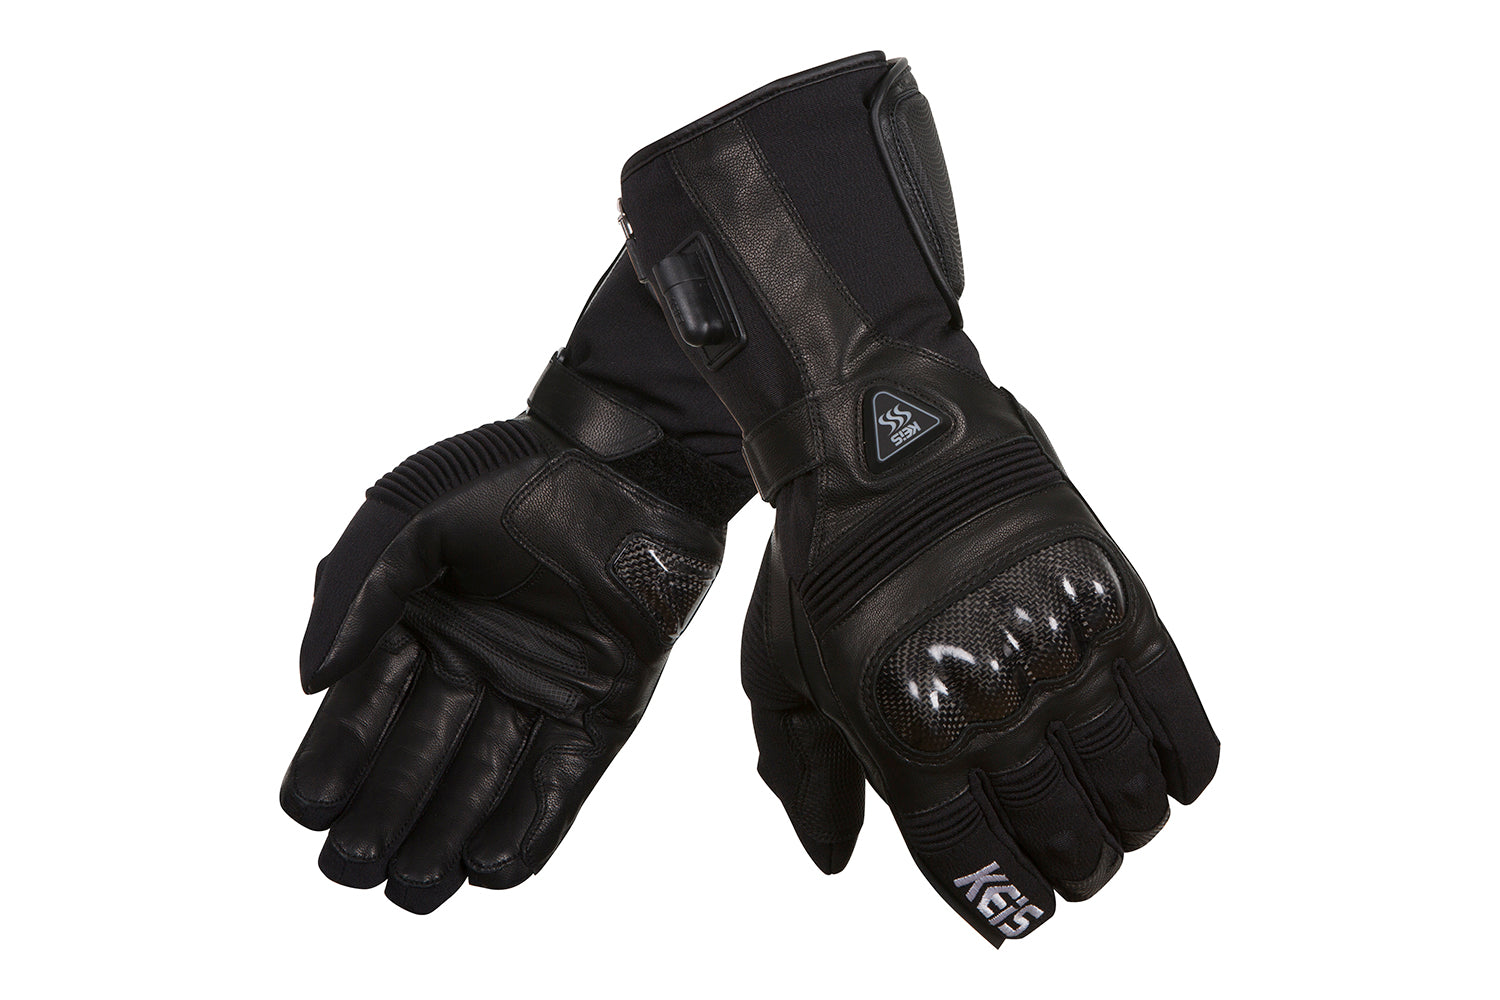 Keis heated motorcycle gloves G502 Sport